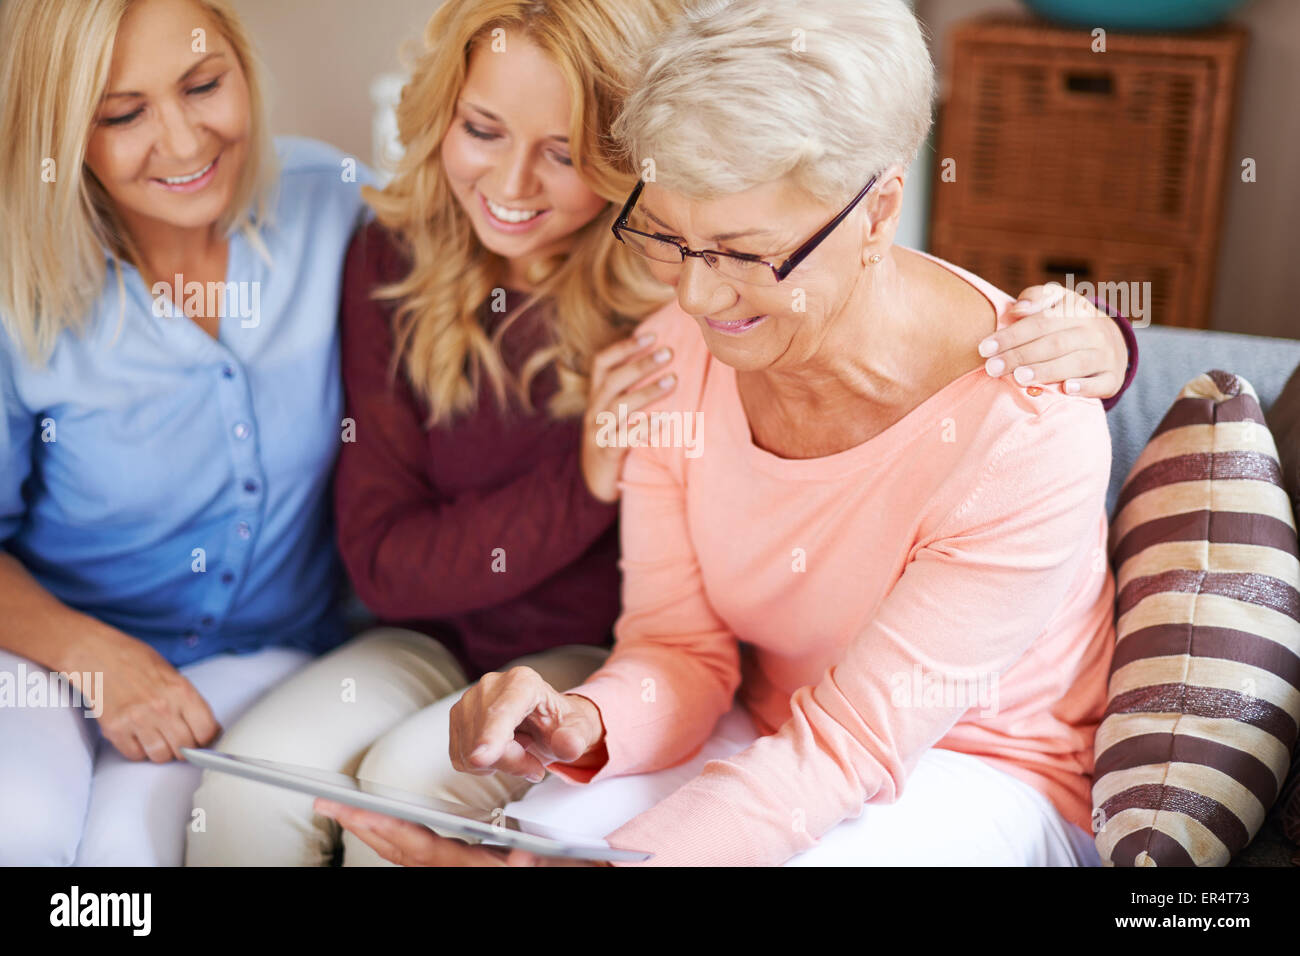 Girl with mom supporting grandma who is learning to use digital tablet. Debica, Poland - Stock Image